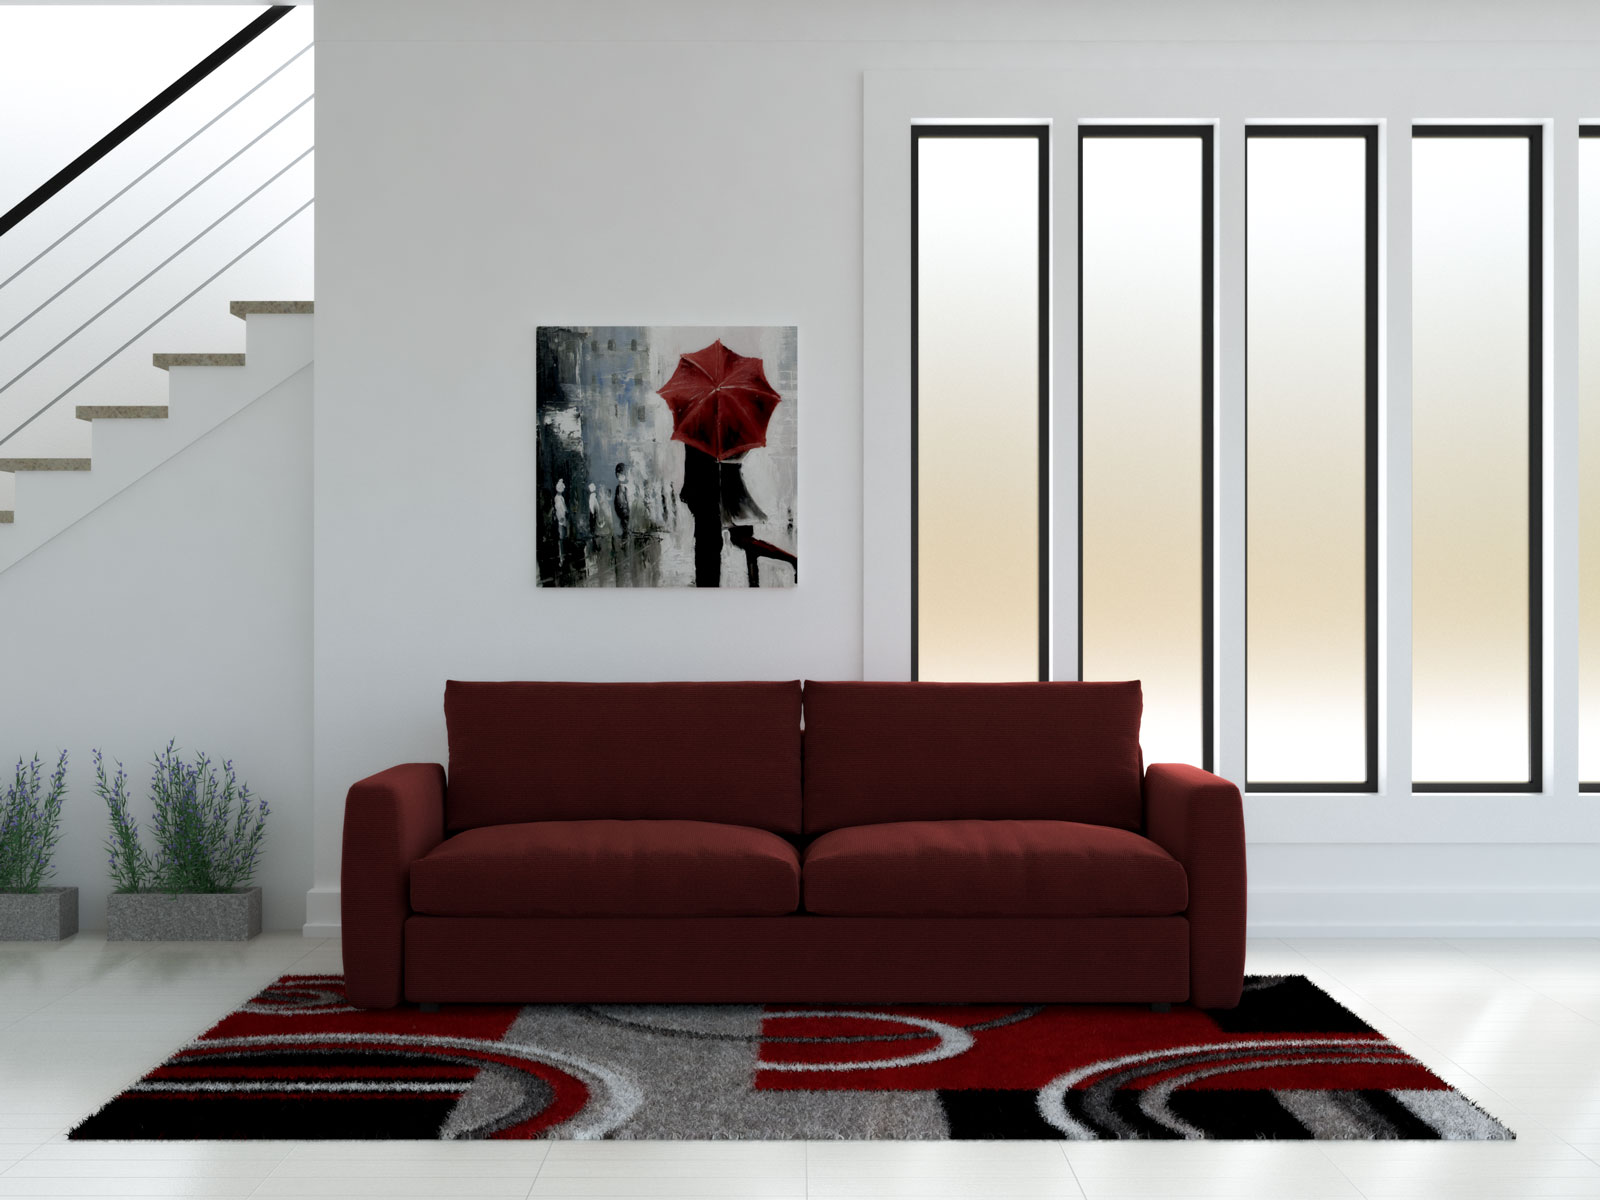 Red couch with red and gray rug